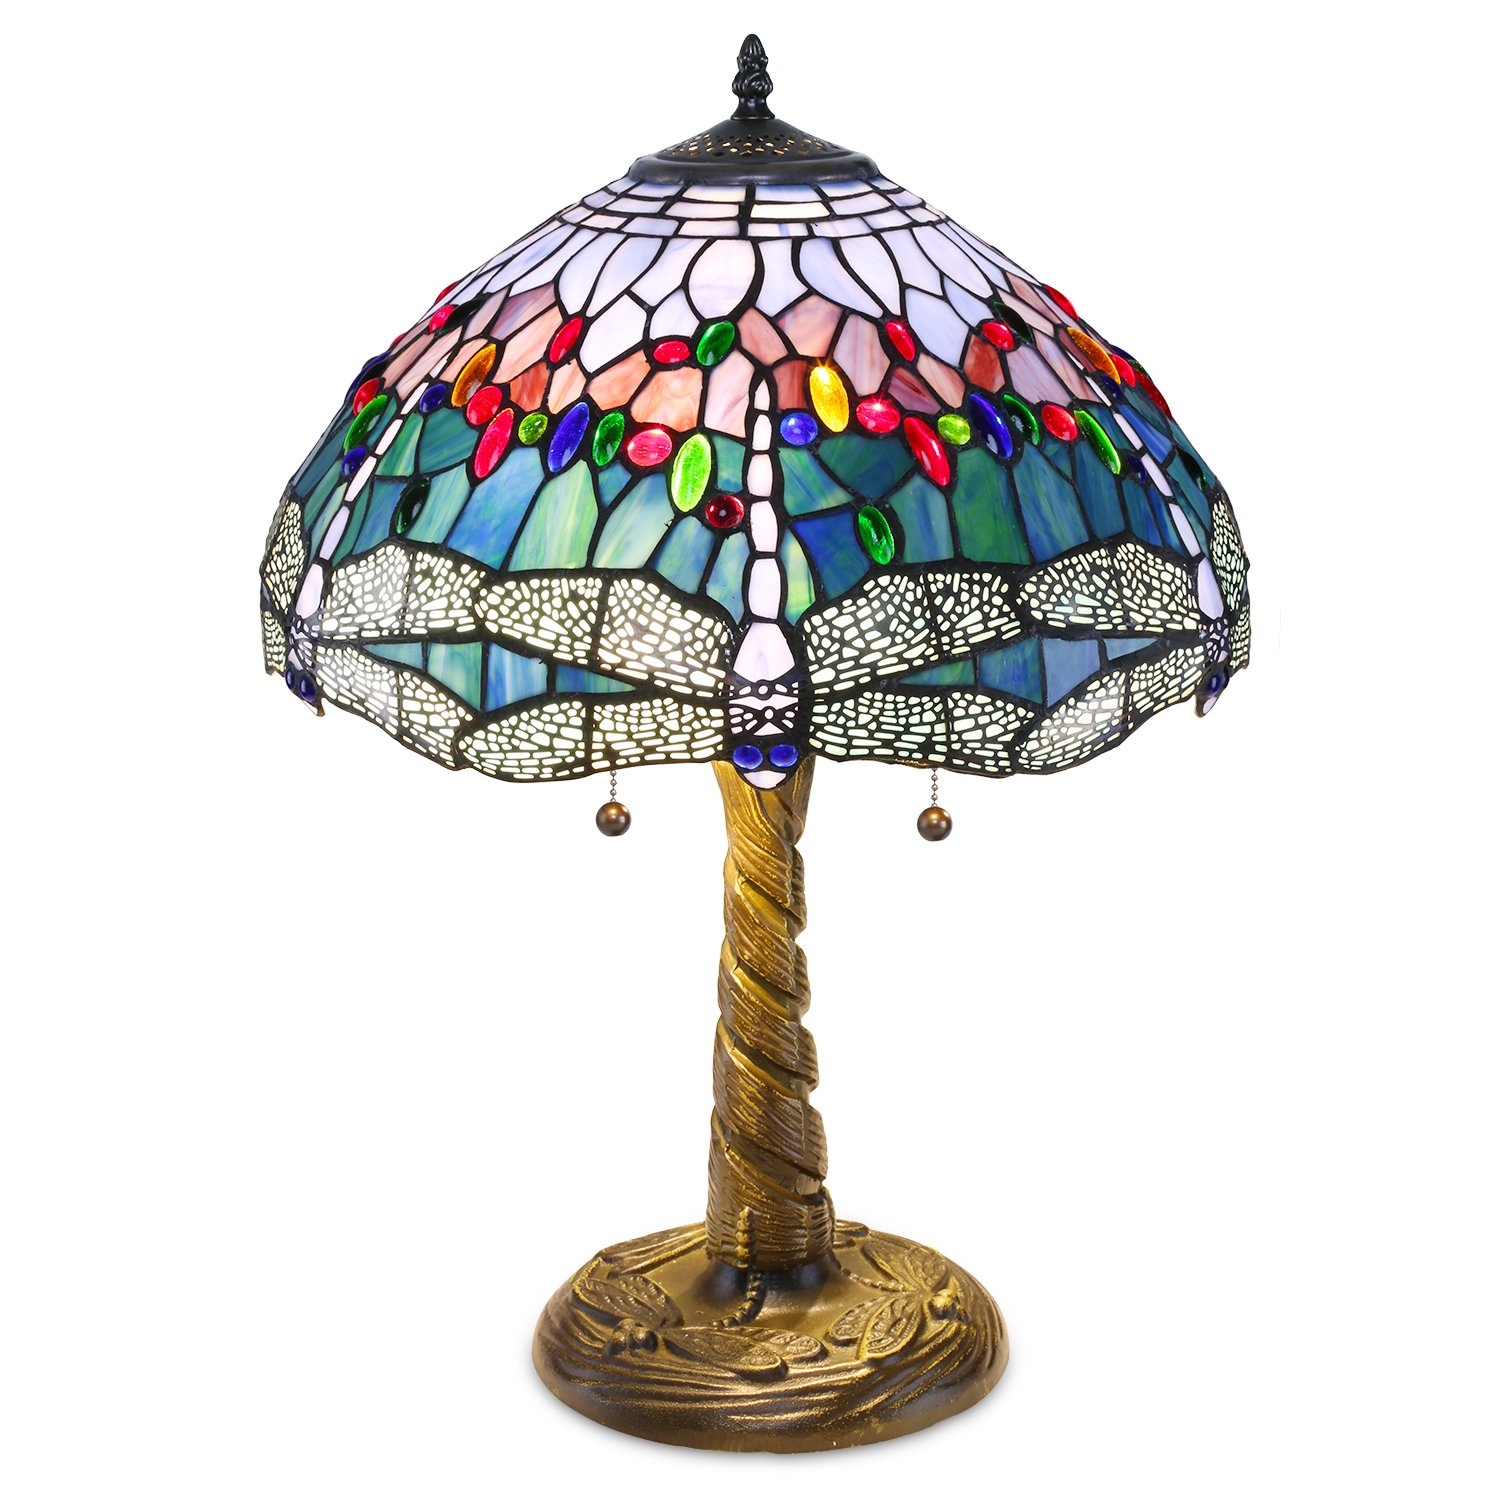 Warehouse of Tiffany WHT008 Tiffany-style Dragonfly Lamp, Blue/Red by Warehouse of Tiffany